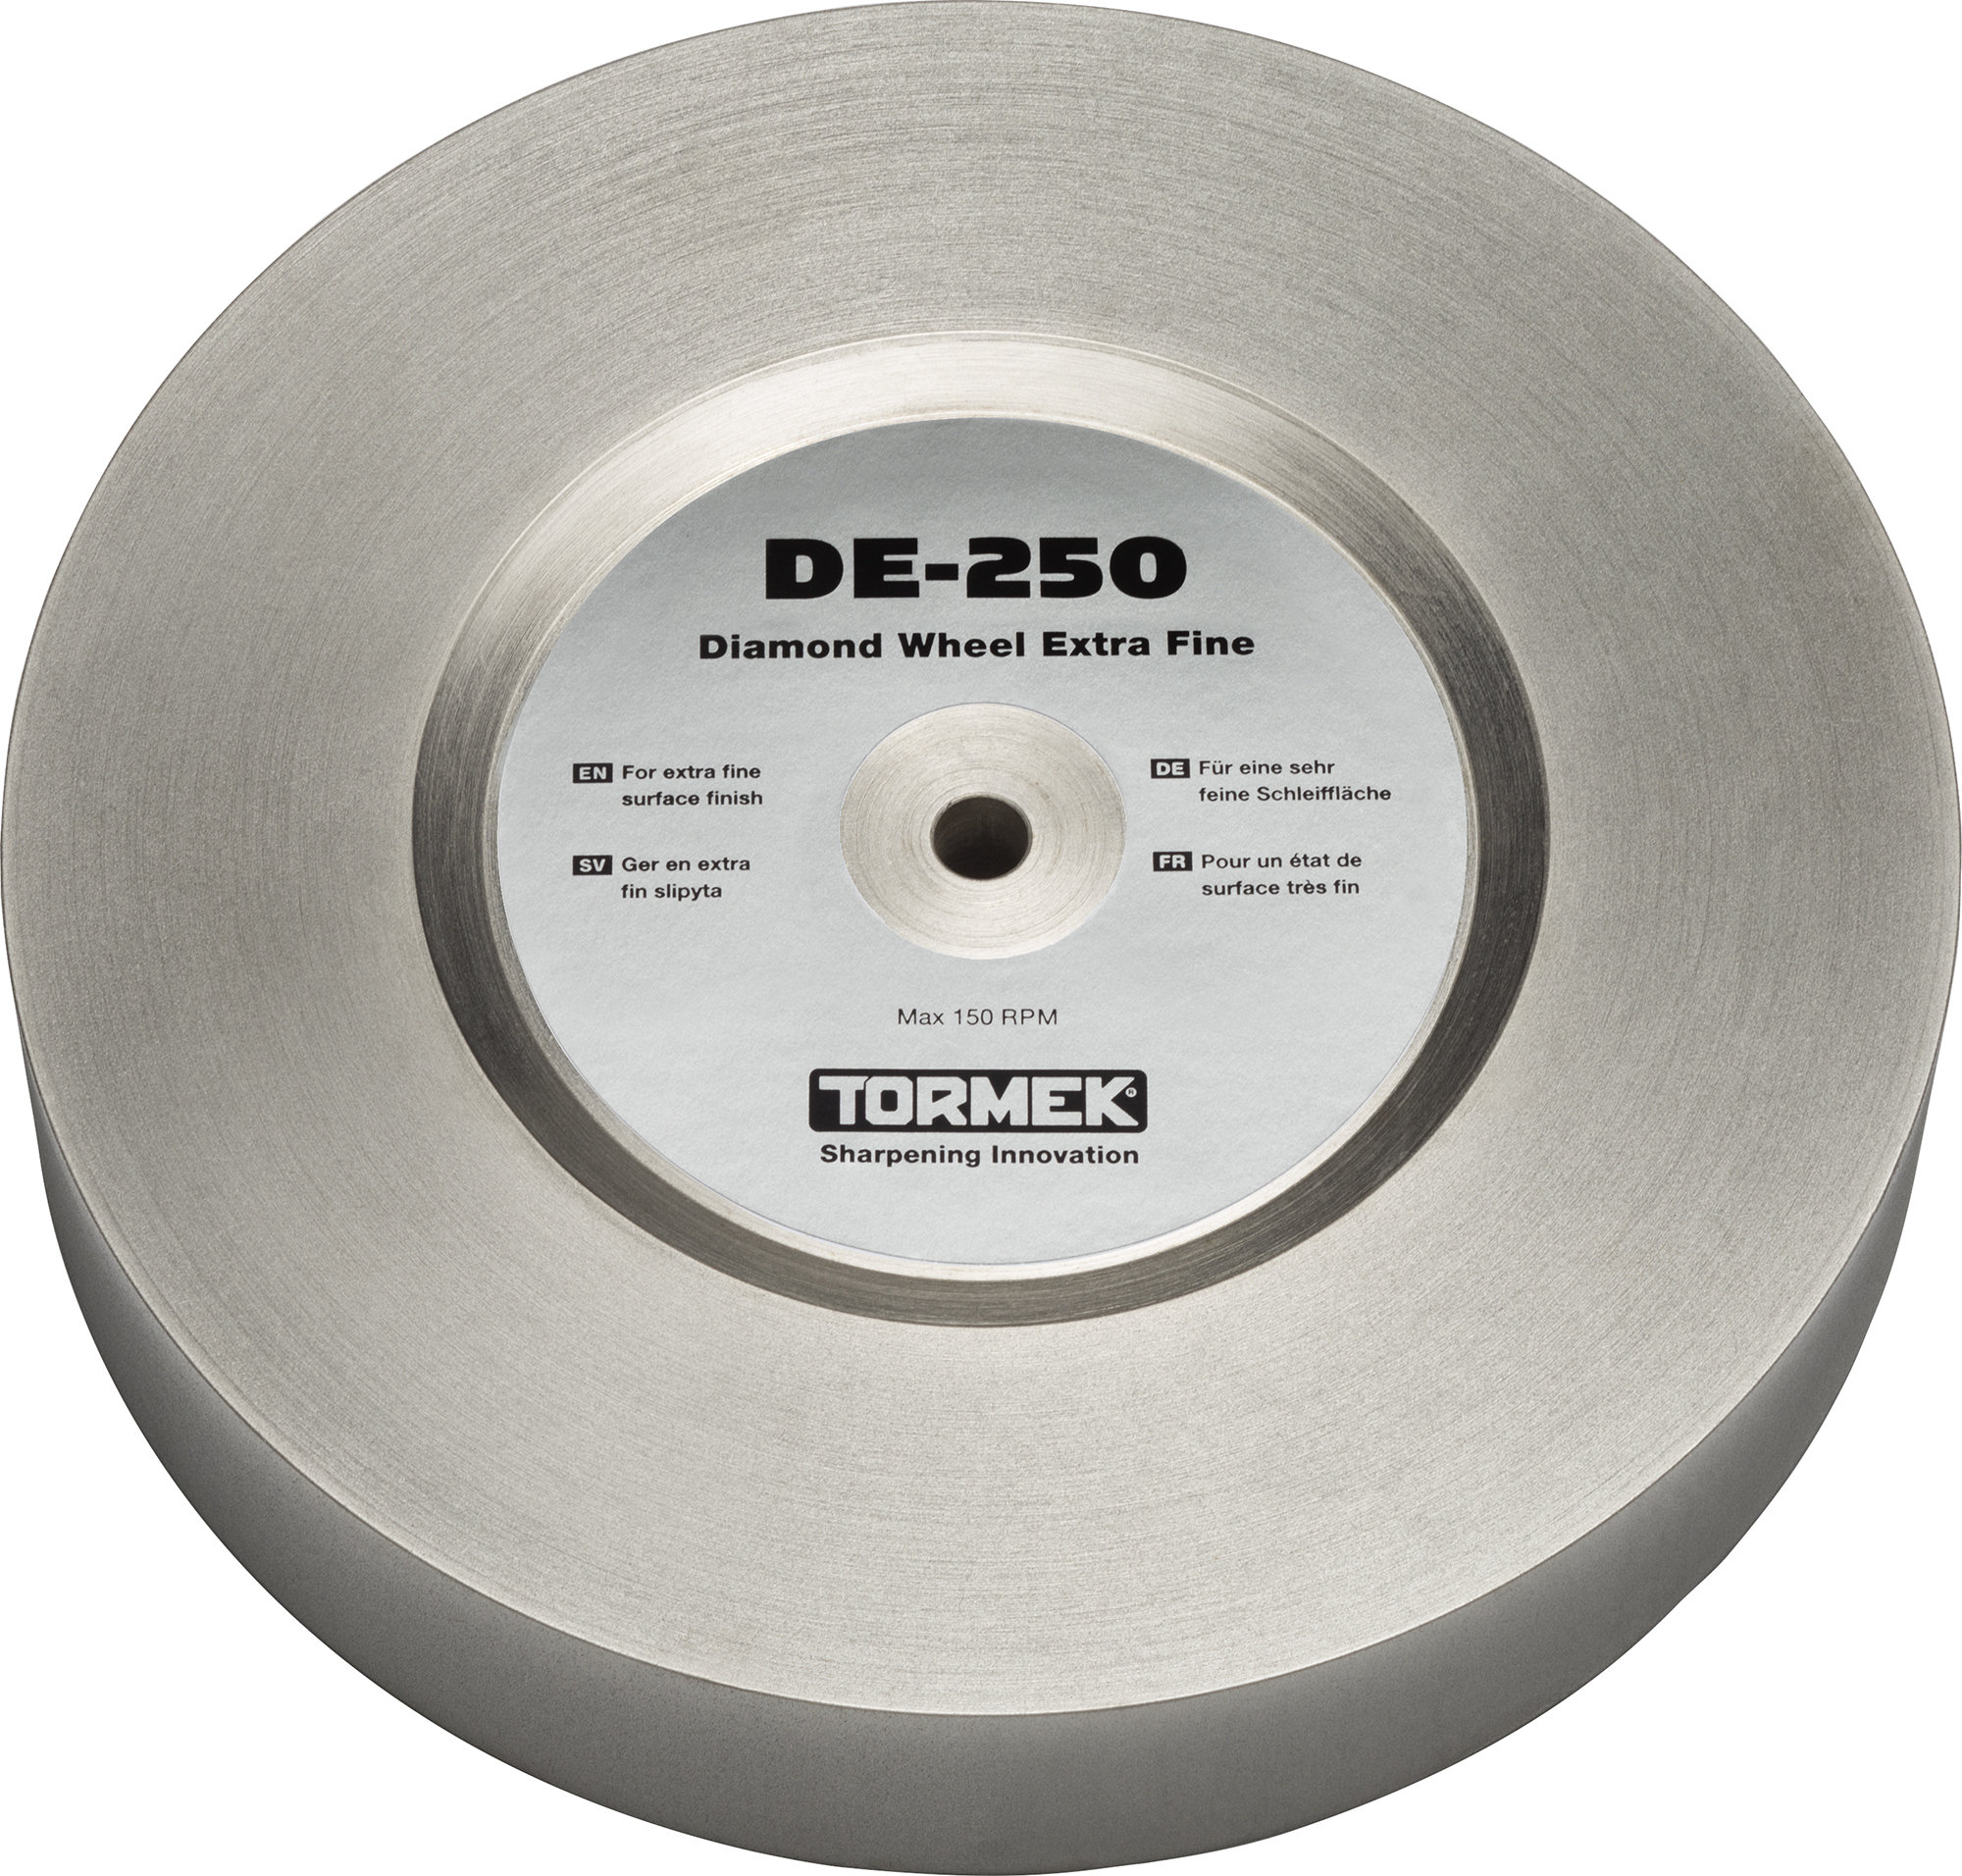 Diamond Wheel—Extra Fine TO-DE-250